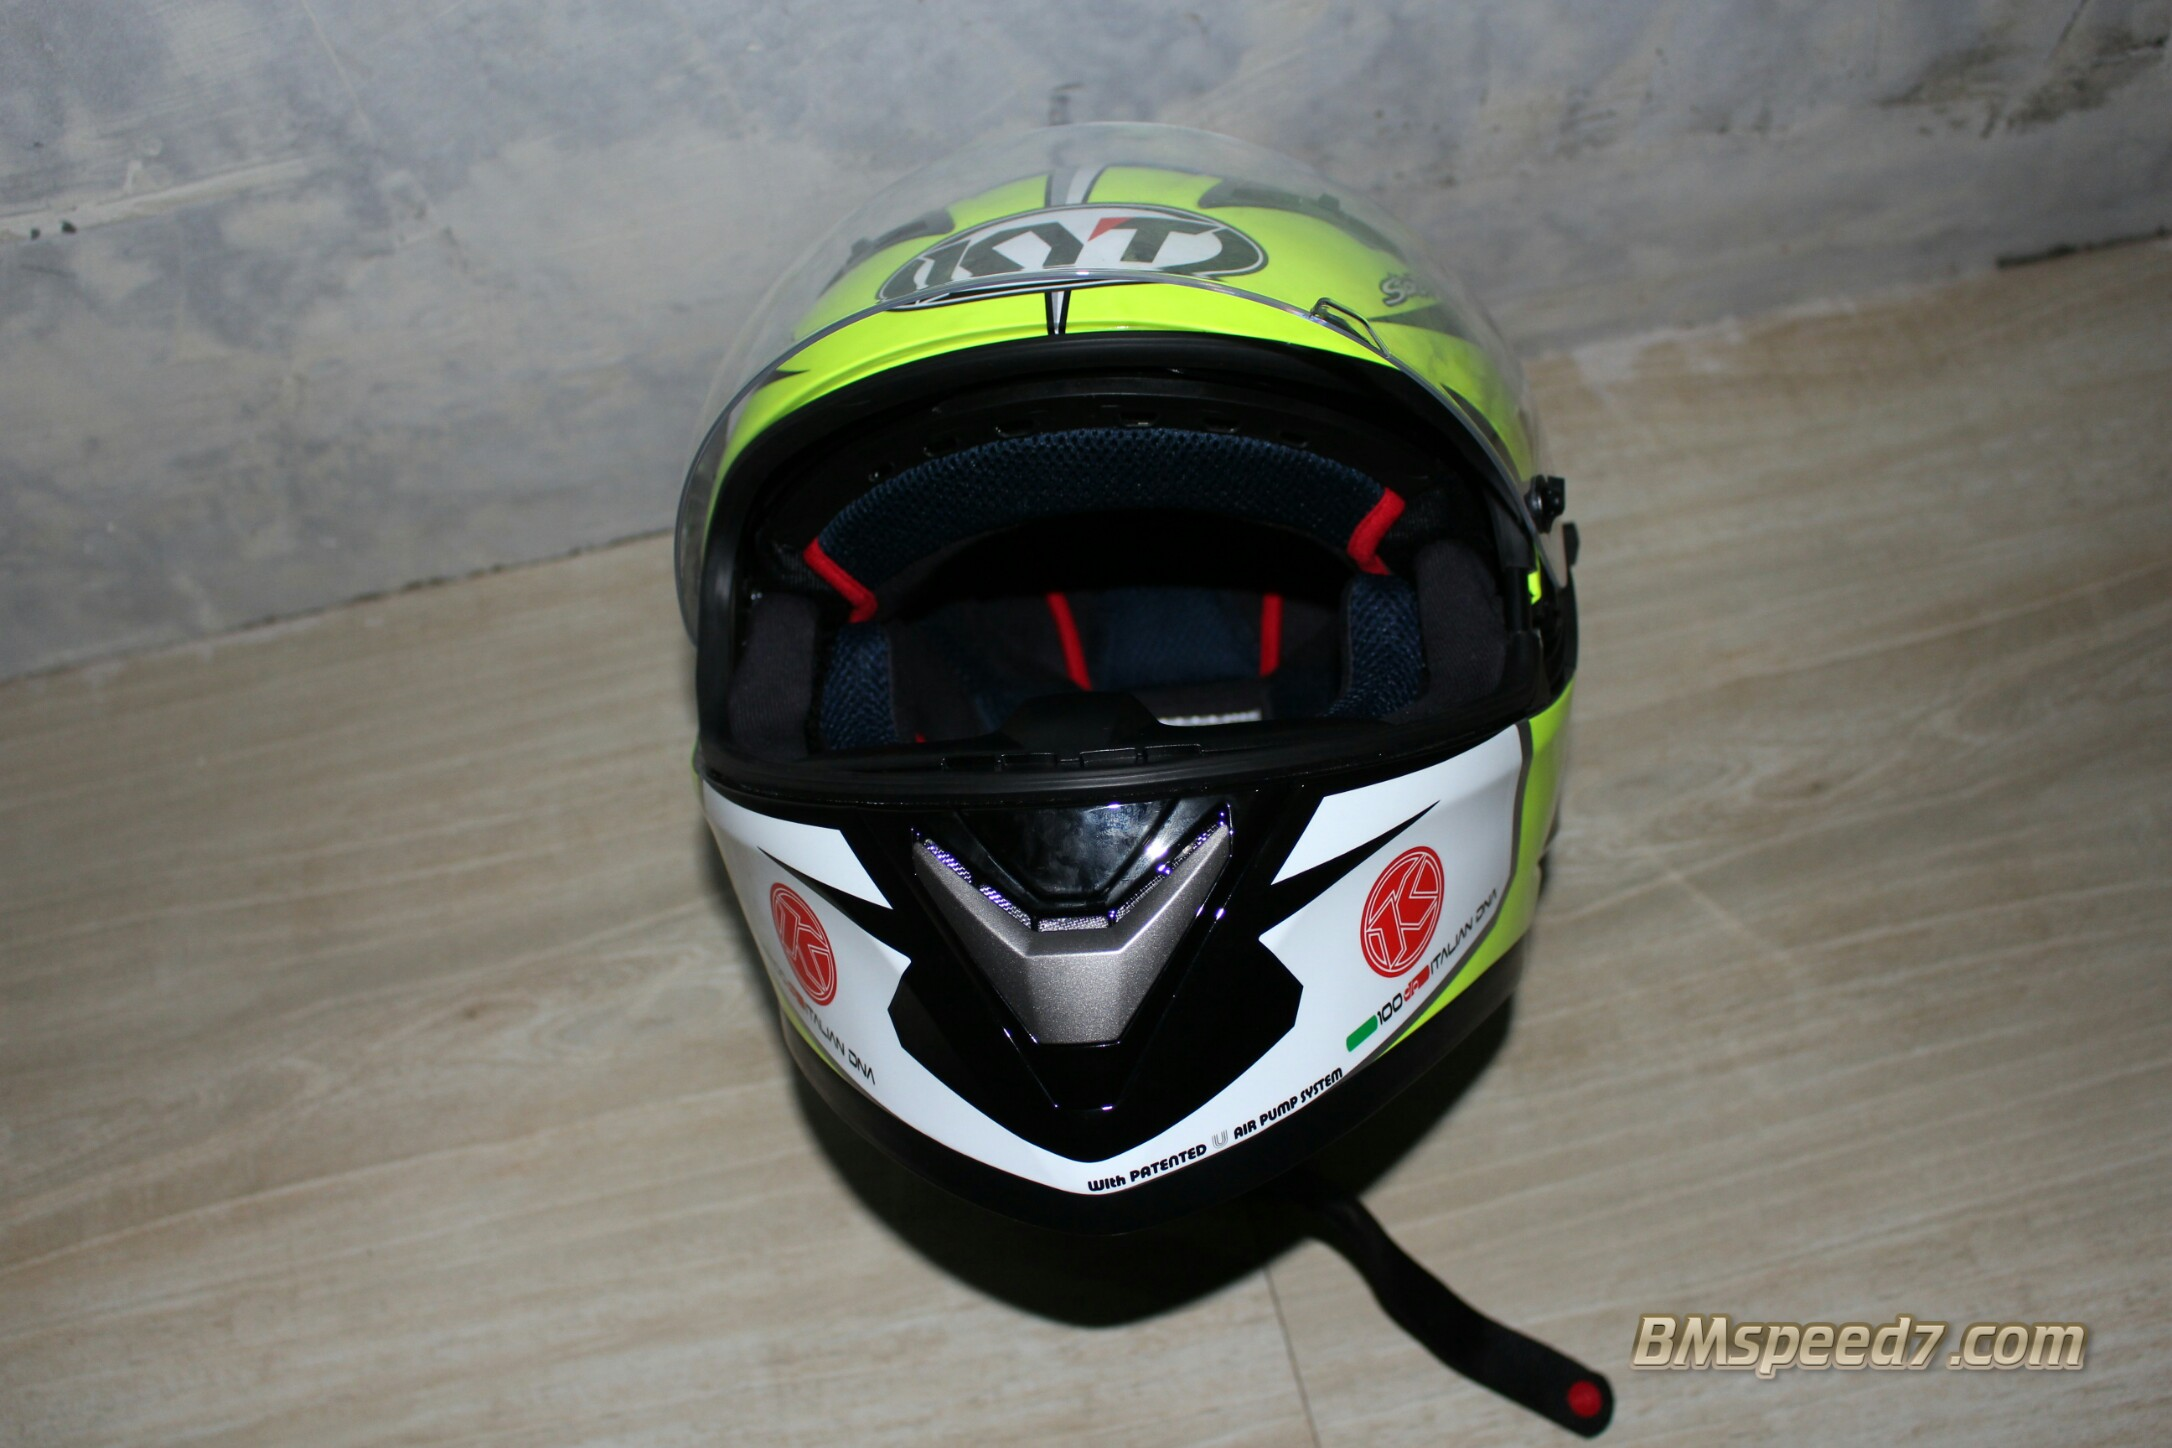 review-kyt-vendetta-2-replika-aleix-espargaro-bmspeed7.com_10.jpg